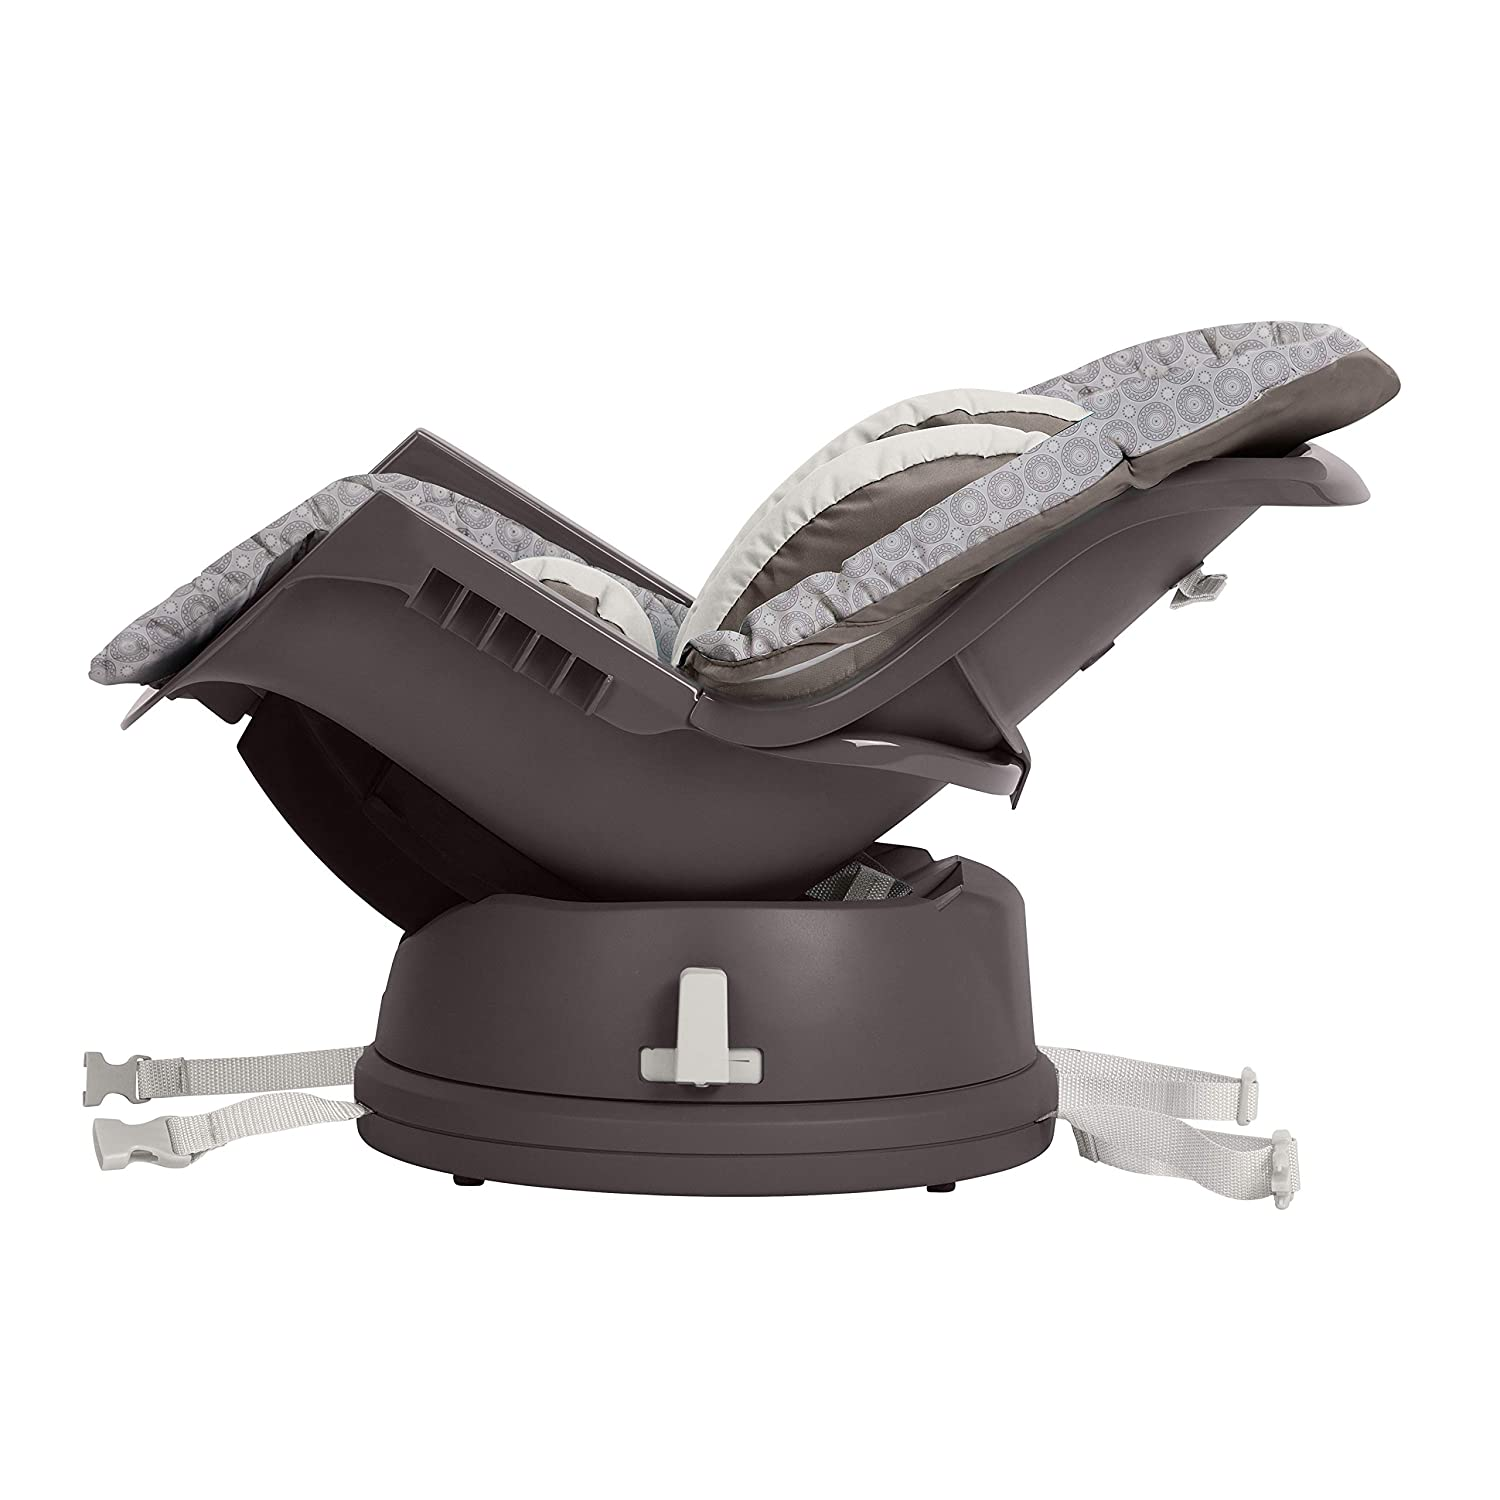 Graco Swivi Seat 3-in-1 Booster High Chair, Abbington : Baby